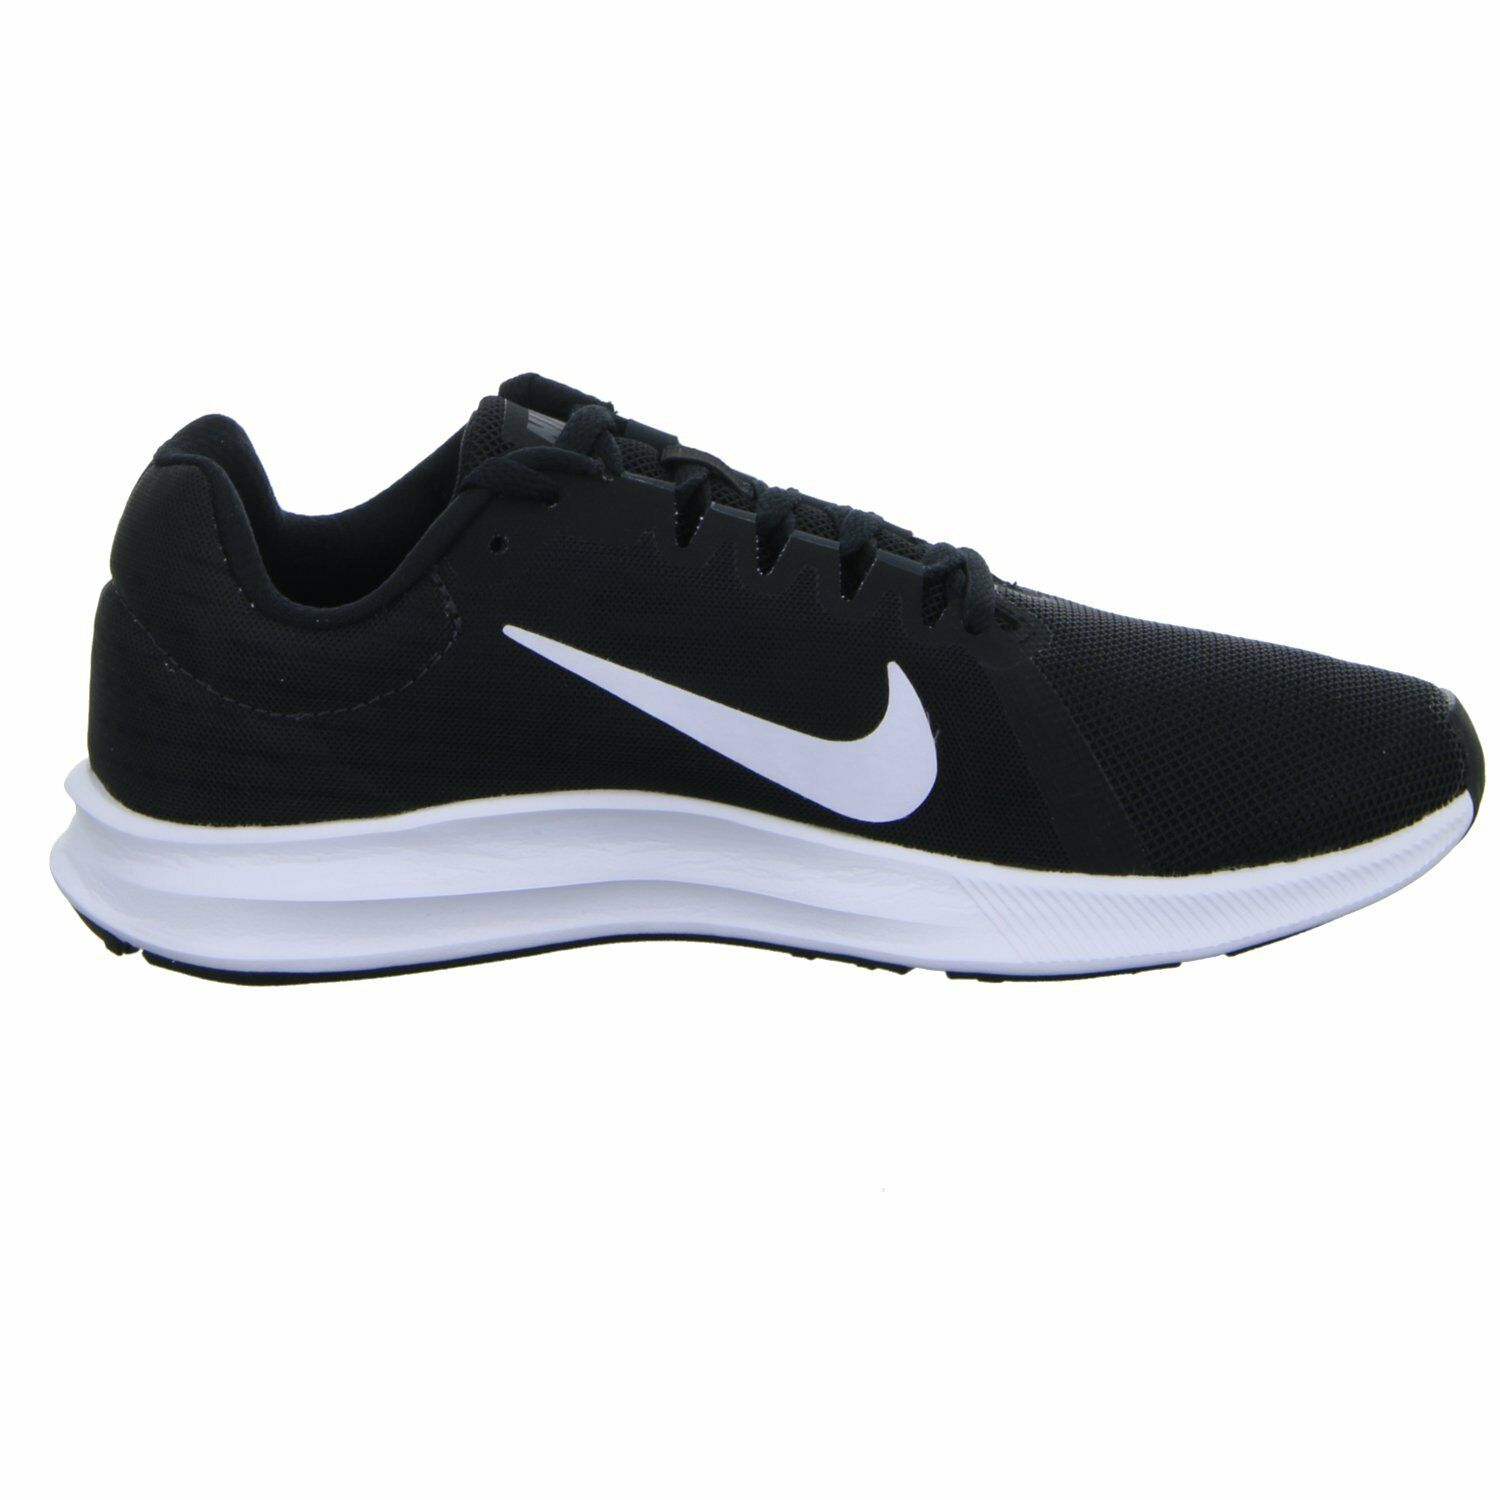 Nike Downshifter 8 Womens Running Shoes (B) (001) | SAVE $$$